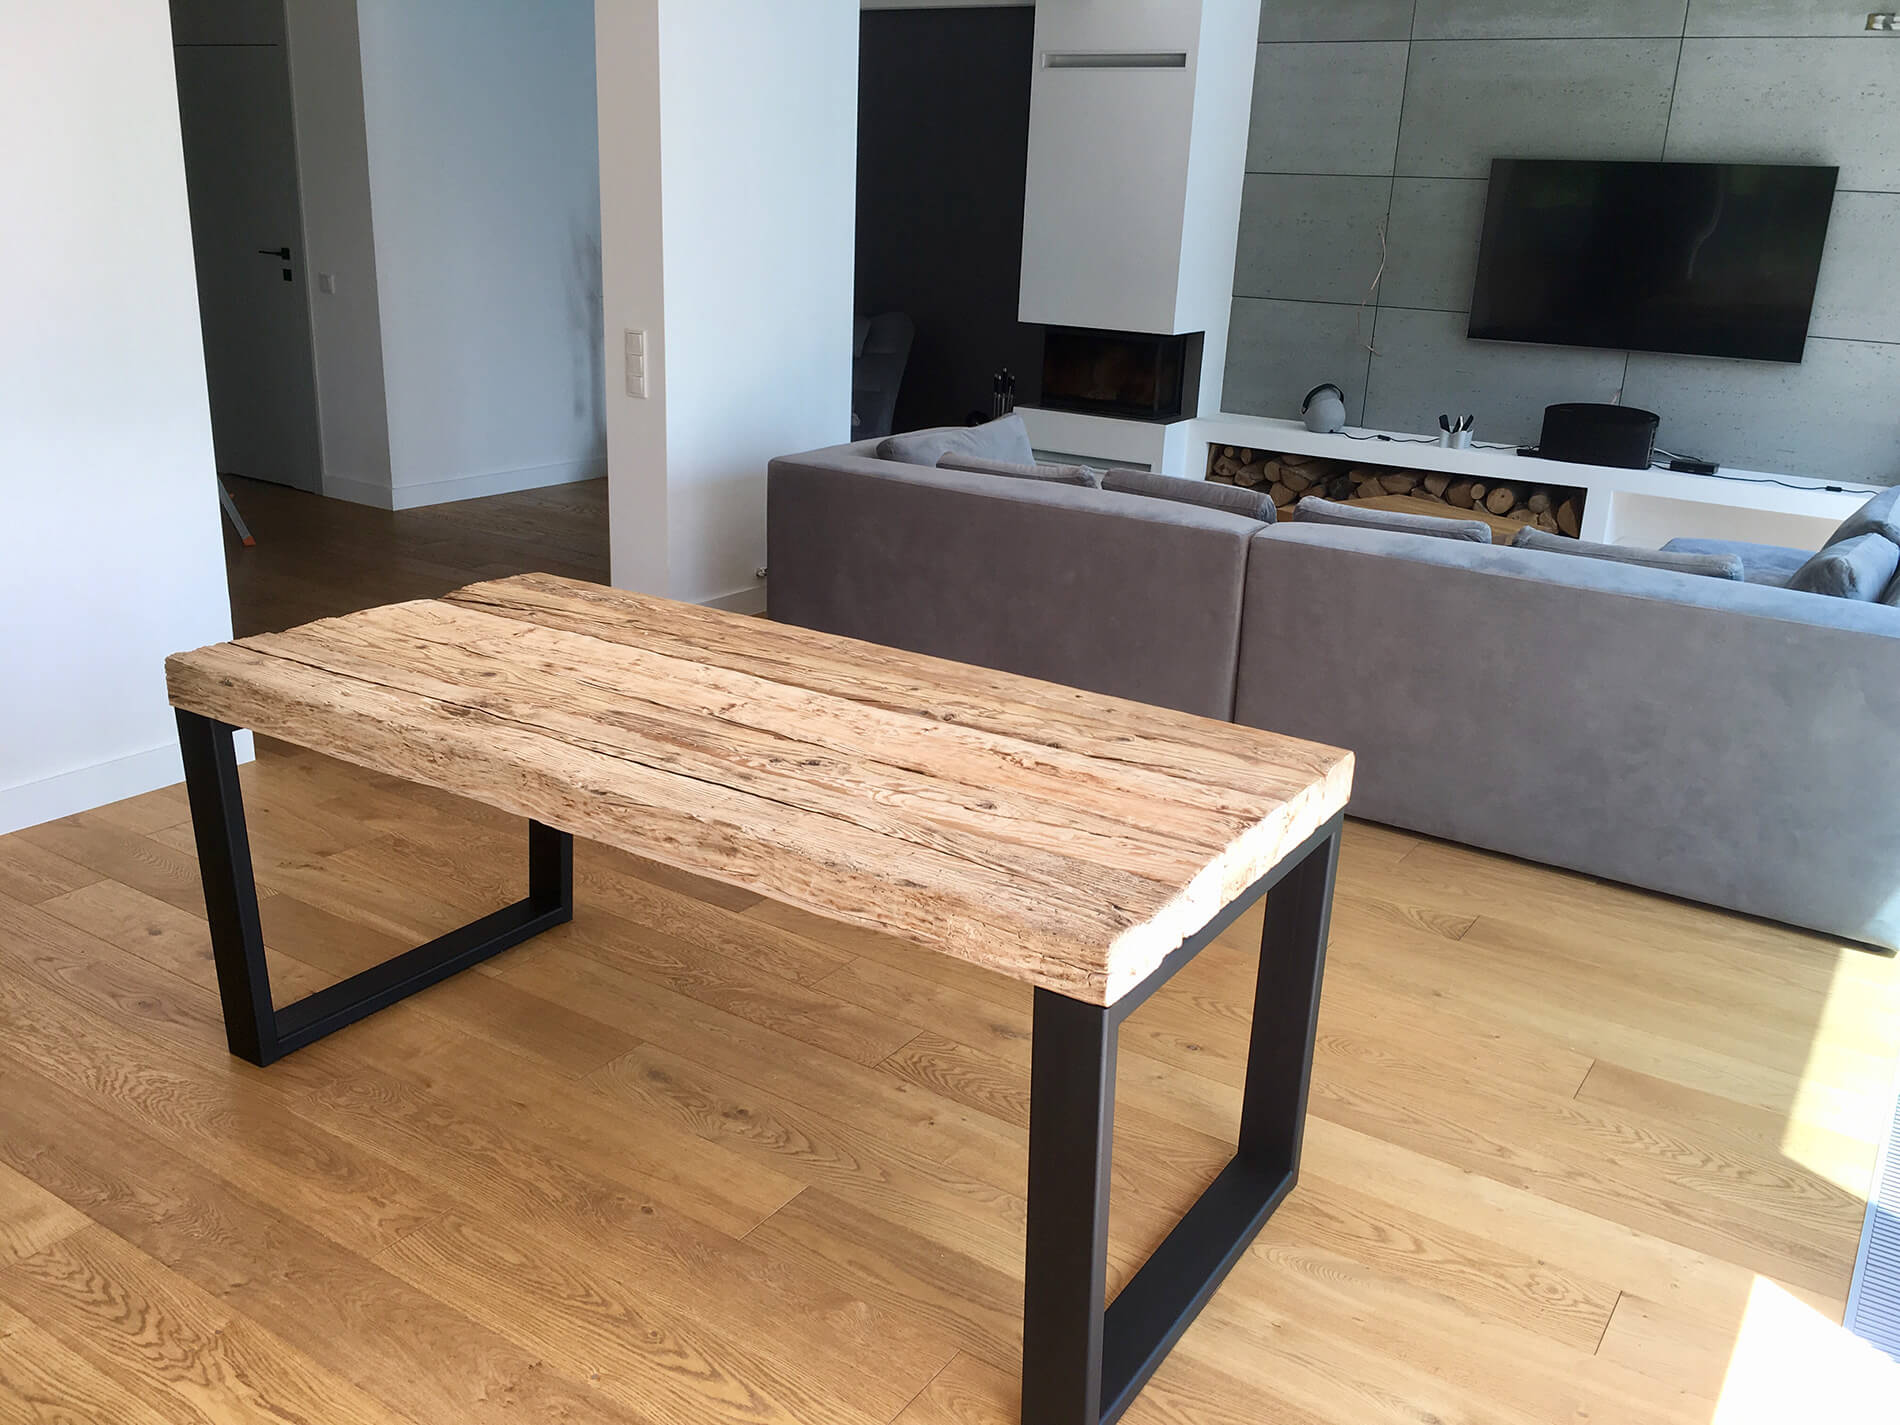 Designer furniture from reclaimed wood for modern environments